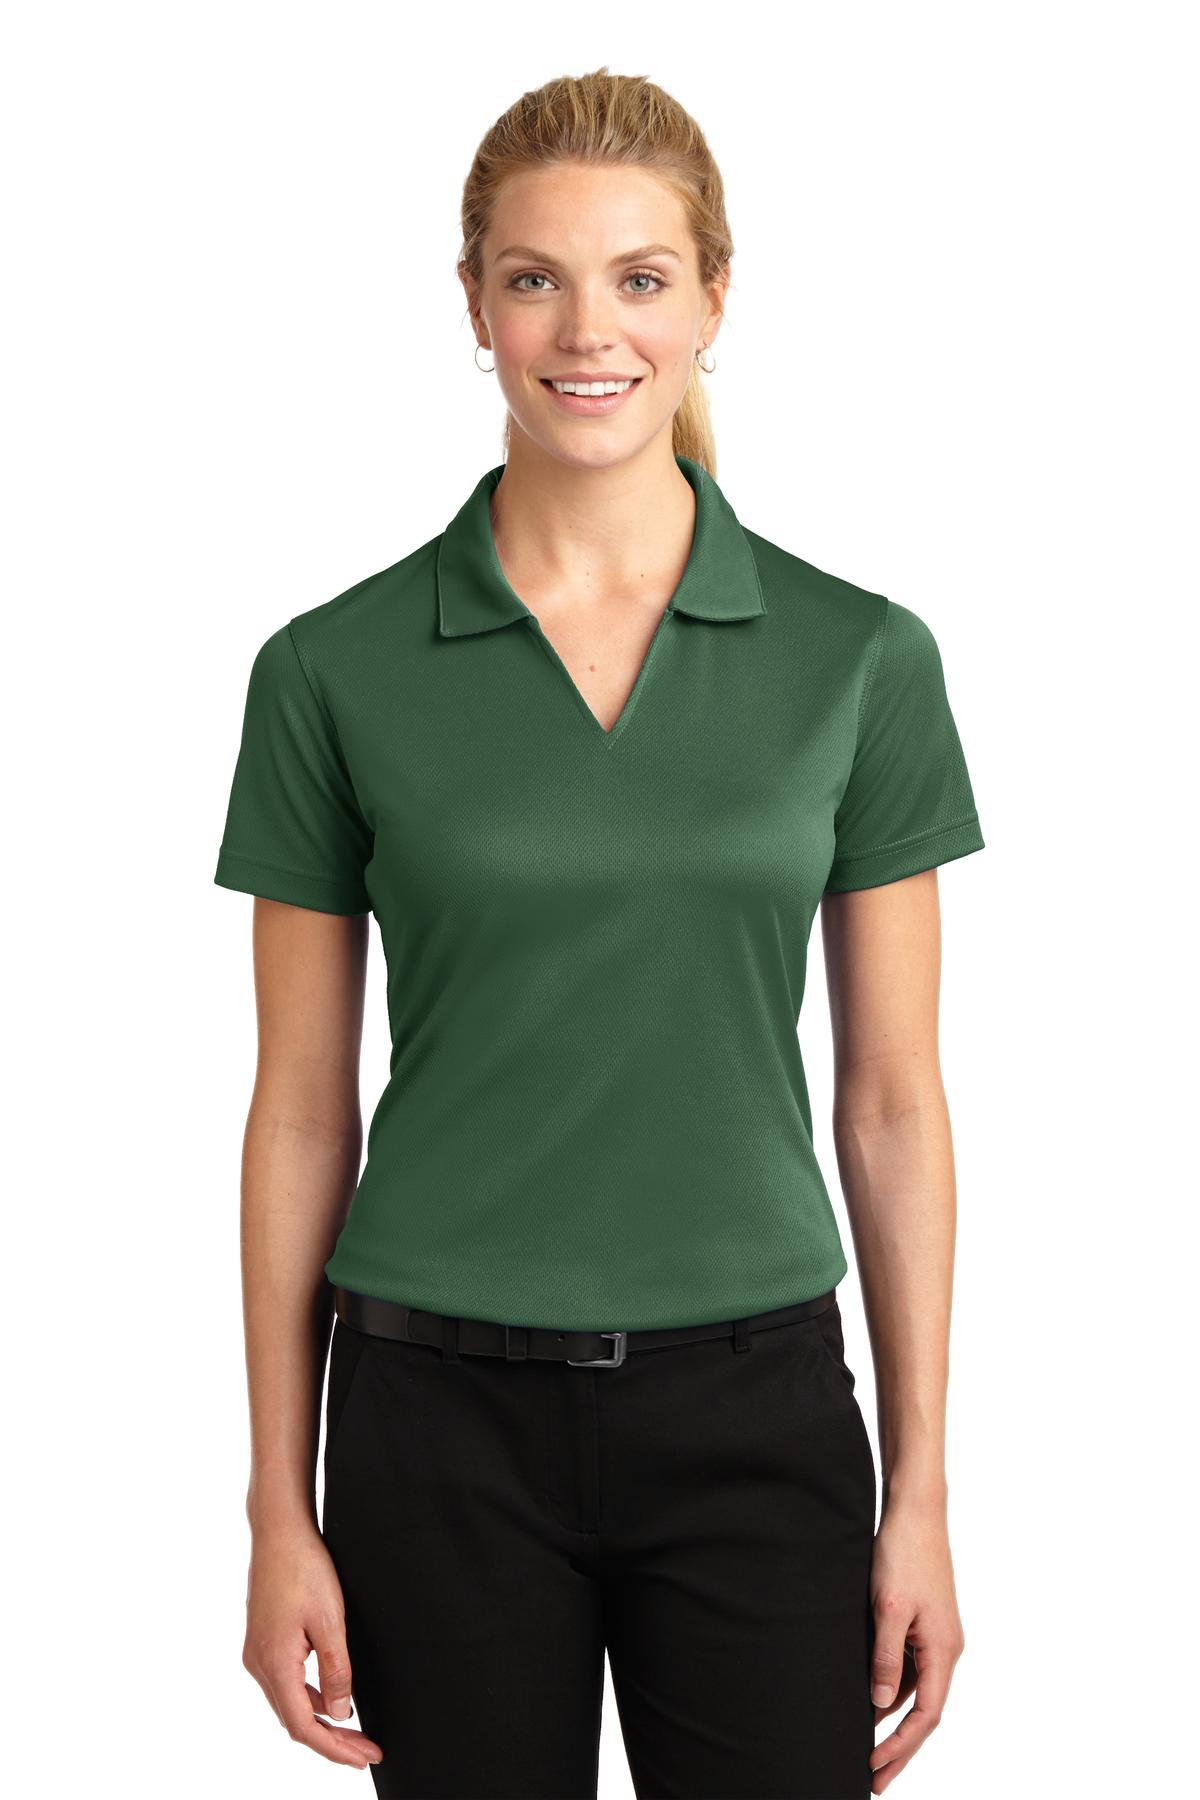 Sport-Tek ®  Ladies Dri-Mesh ®  V-Neck Polo.  L469 - Forest Green